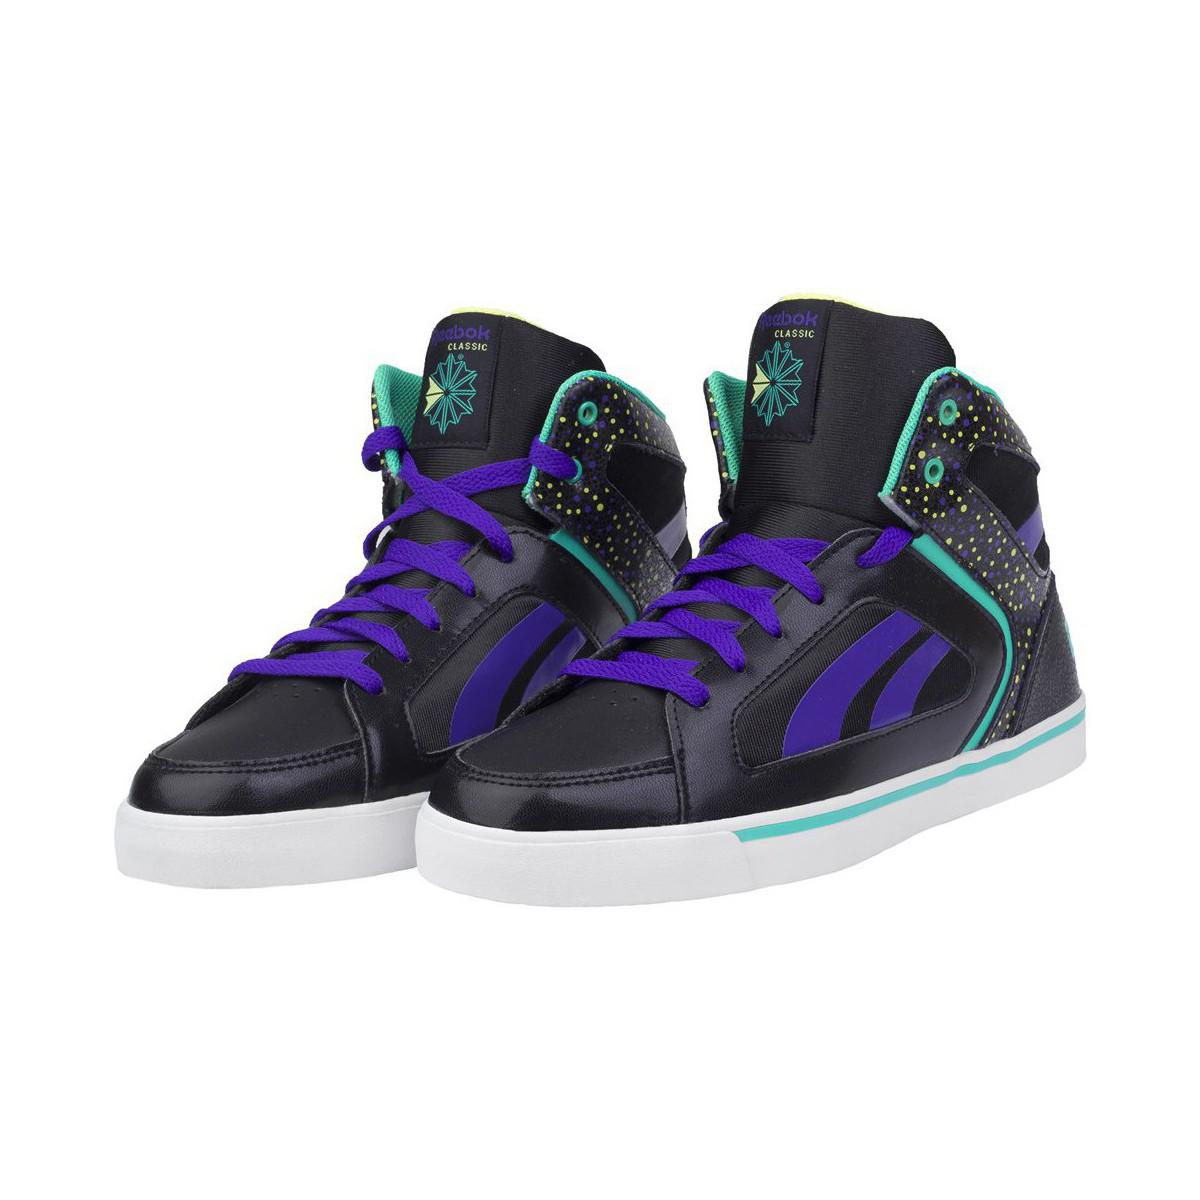 f97ca2adcde74 Reebok Ksee You Mid Women s Shoes (high-top Trainers) In Purple in ...